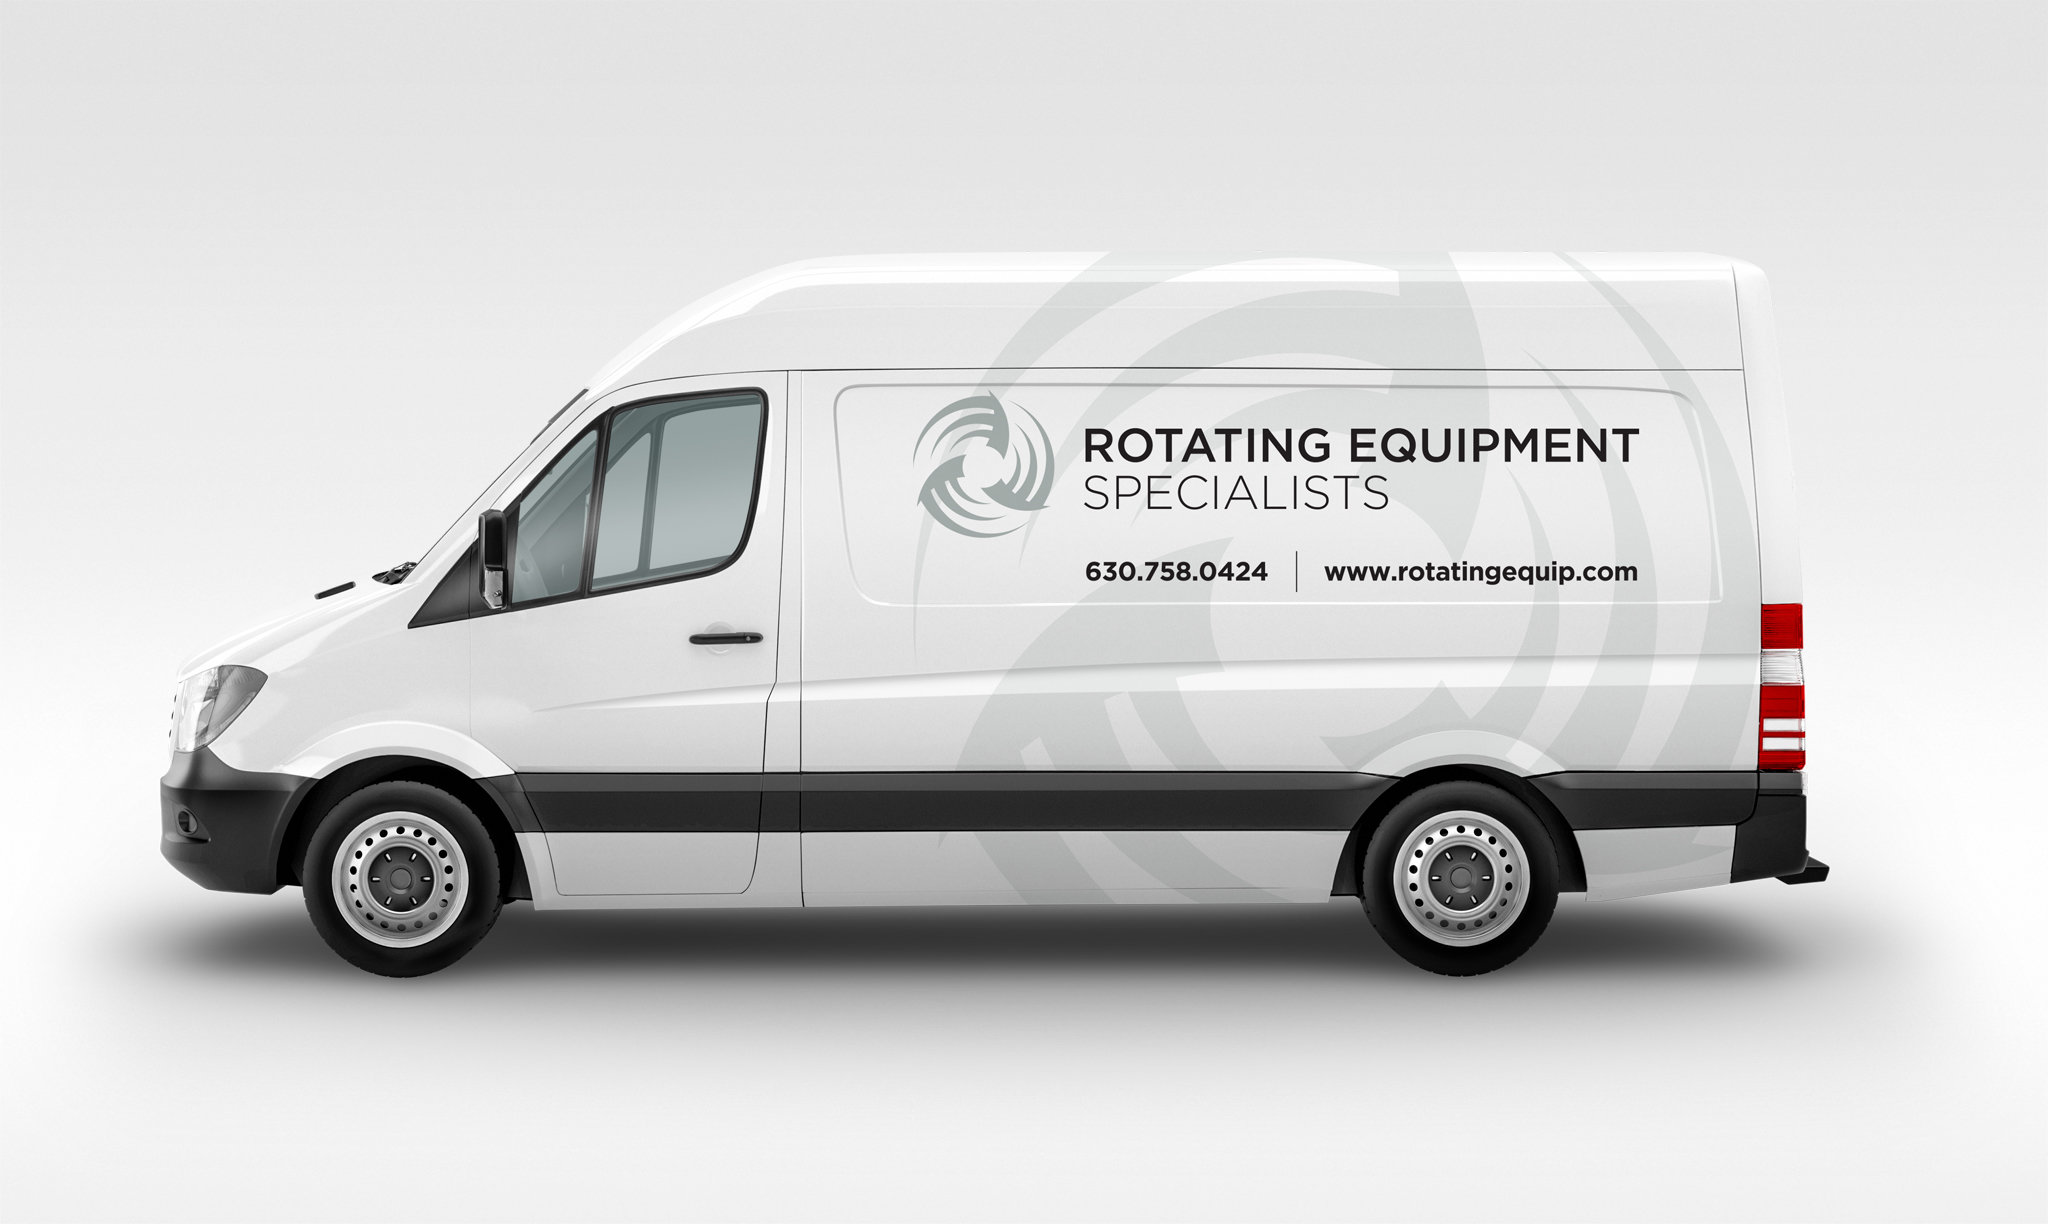 Rotating Equipment Specialists Vehicle Wrap